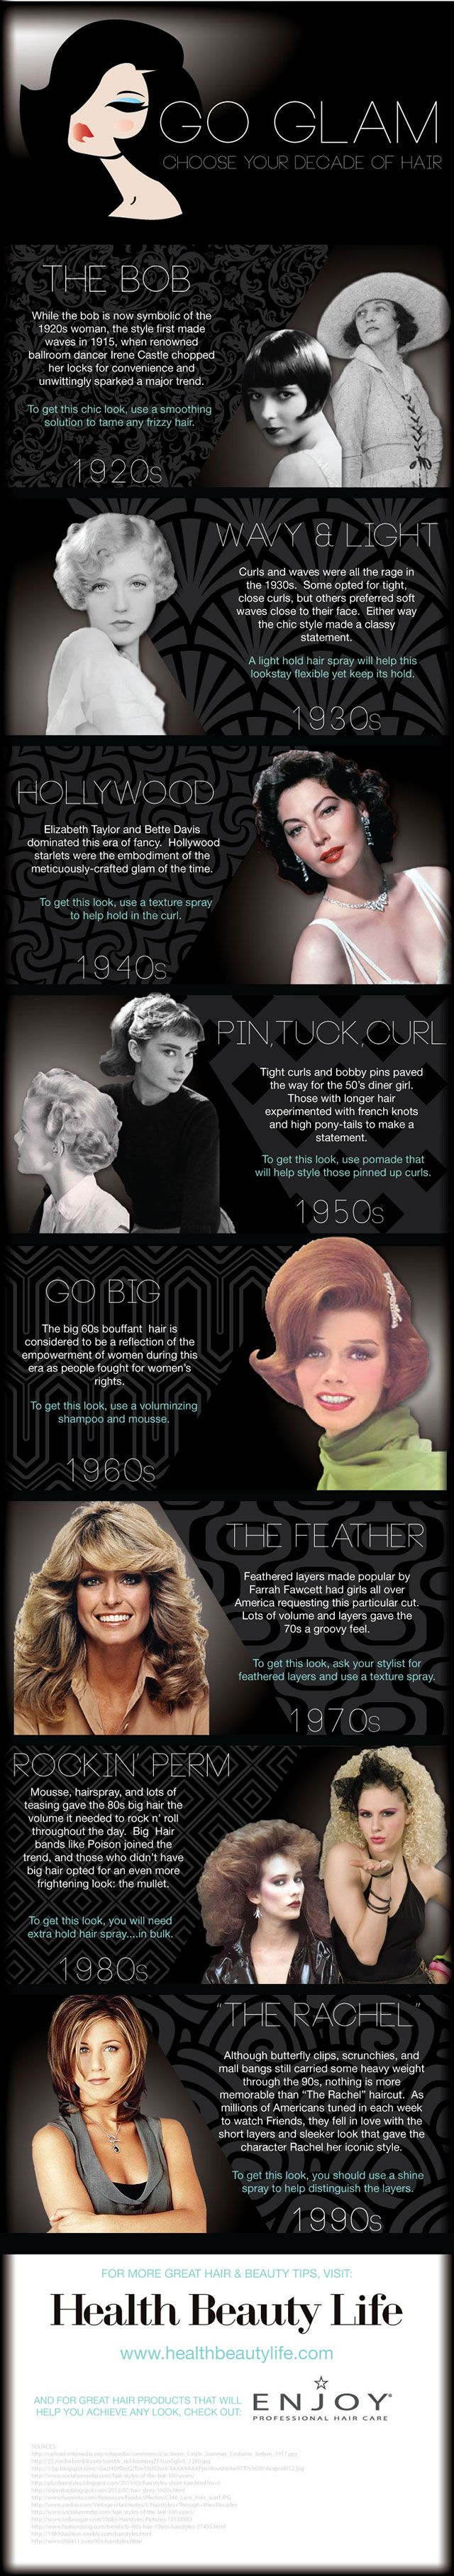 Go Glam by Choosing Your Decade of Hair! The 90's 50's and 30's ones are my favorites, but these are great for ideas!